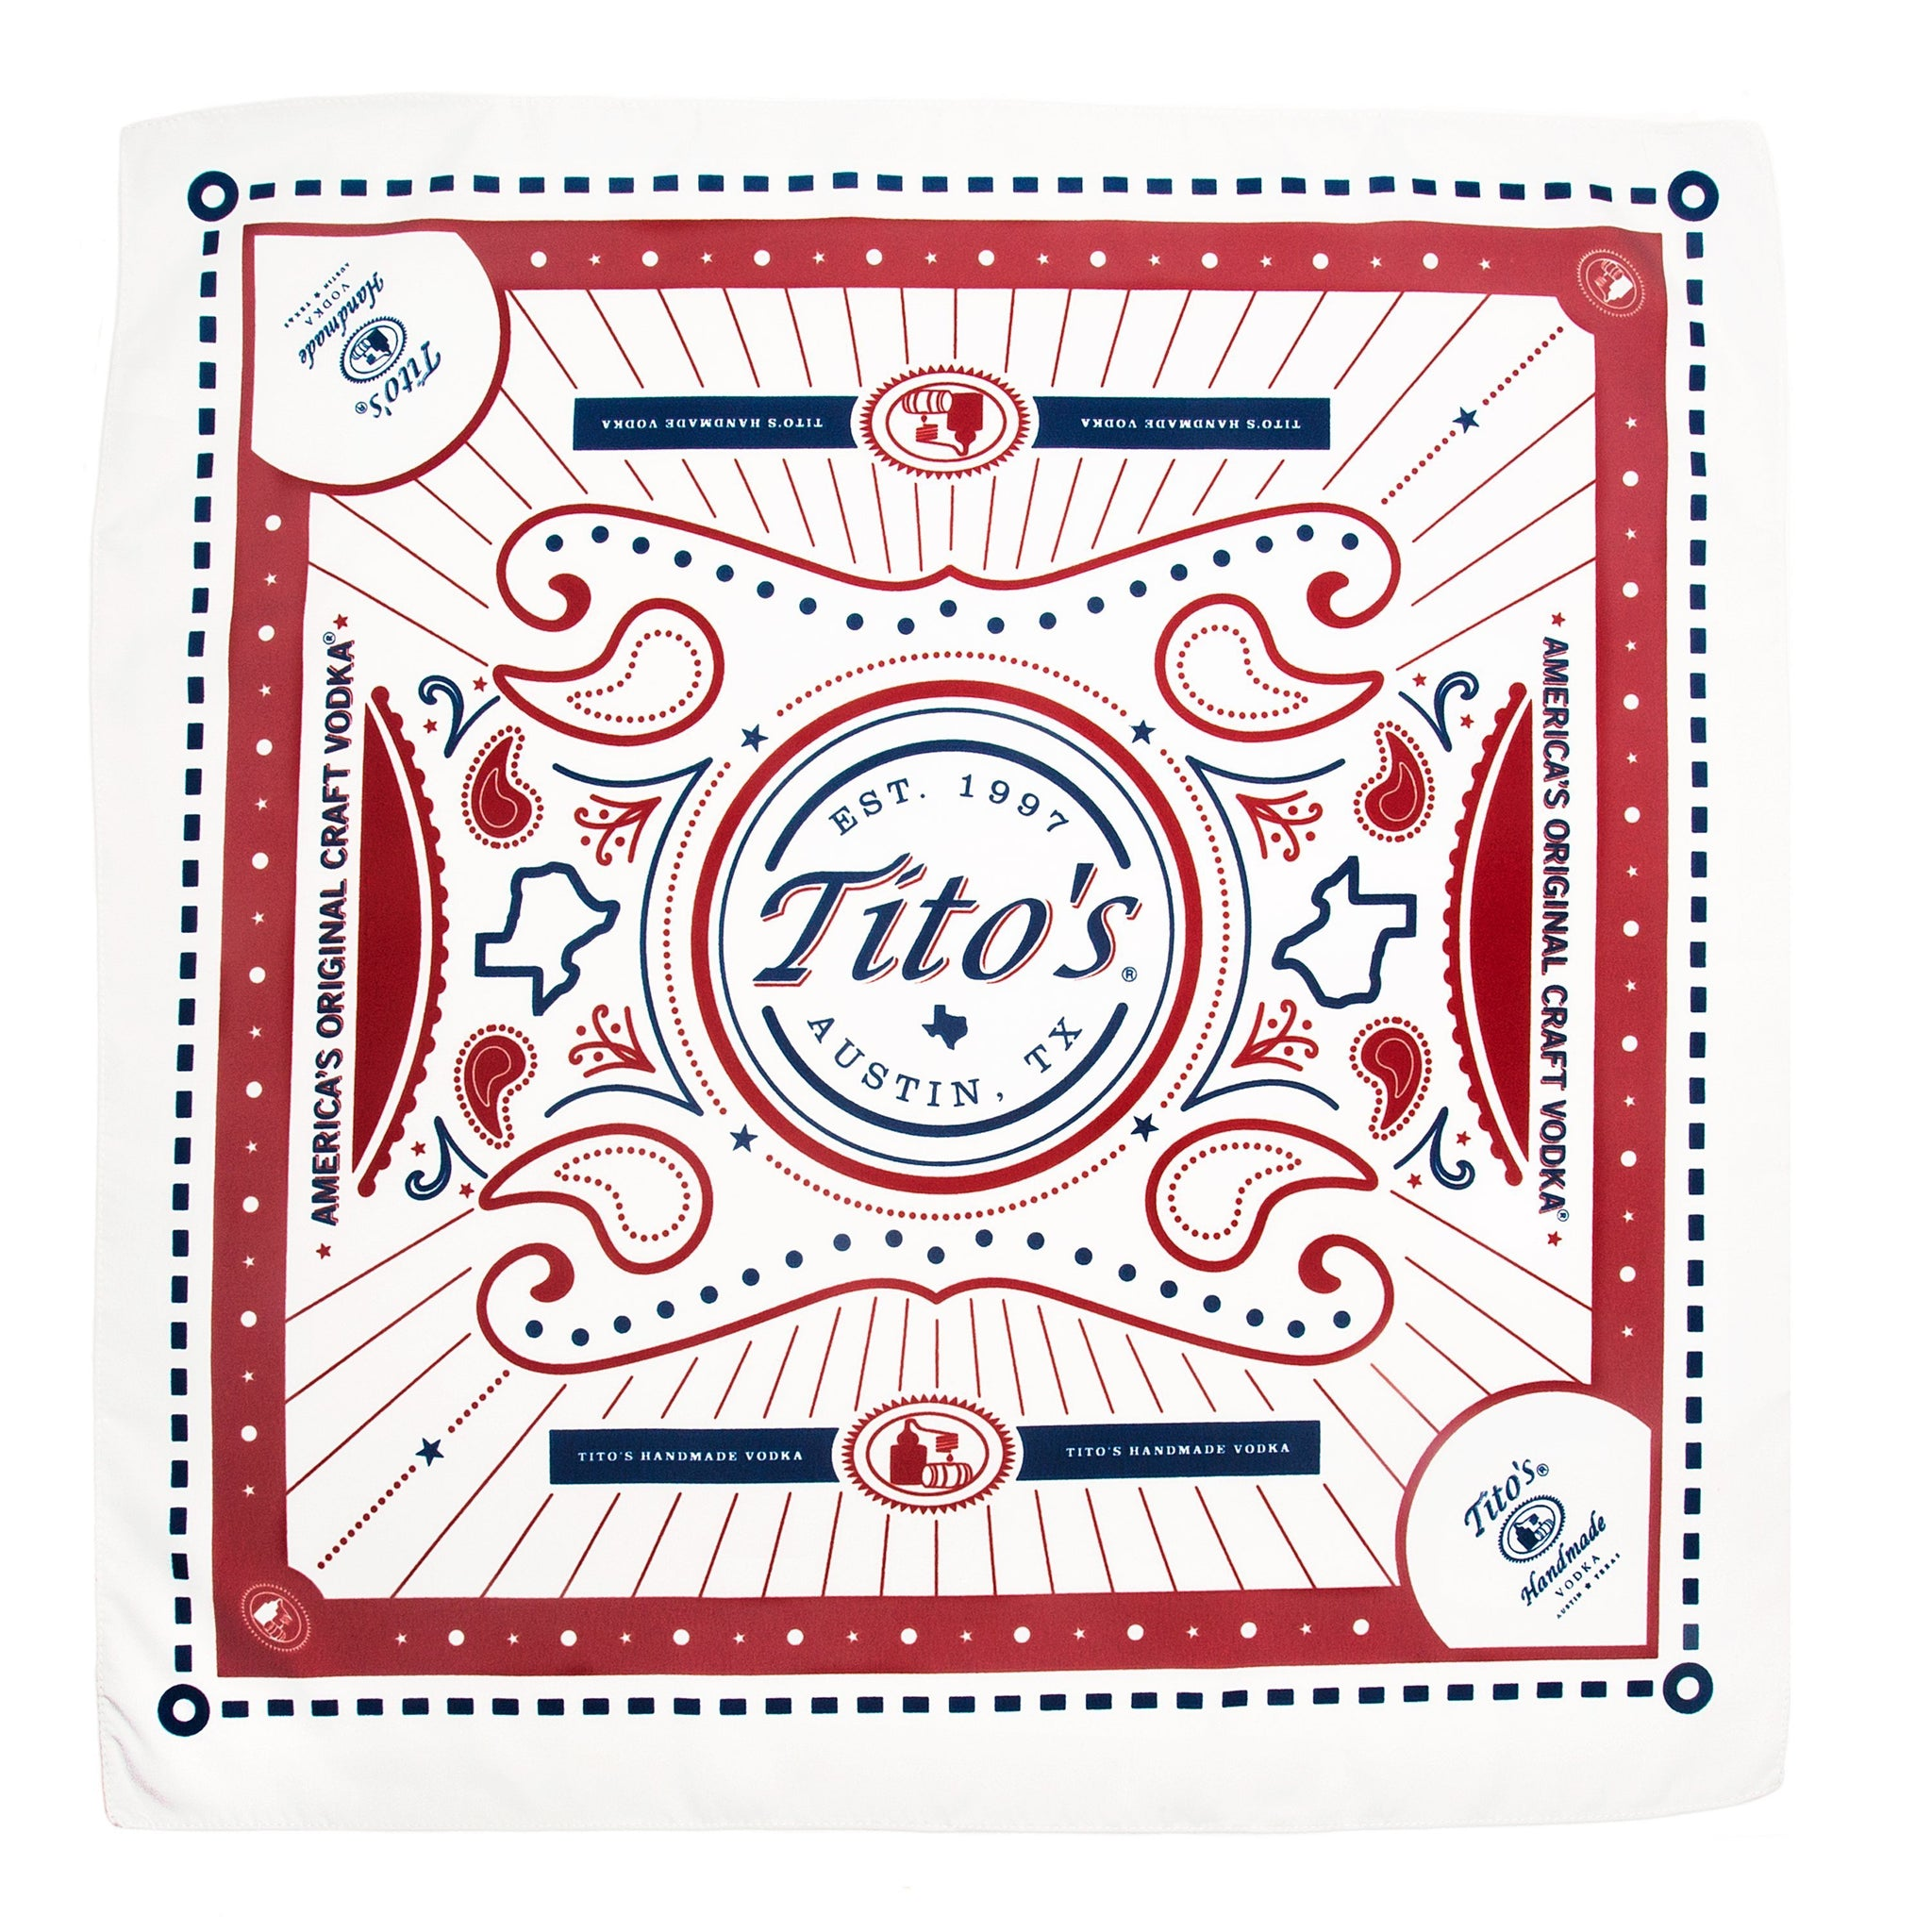 Red, white, and blue bandana with Tito's logo, pot stills, and the state of Texas details